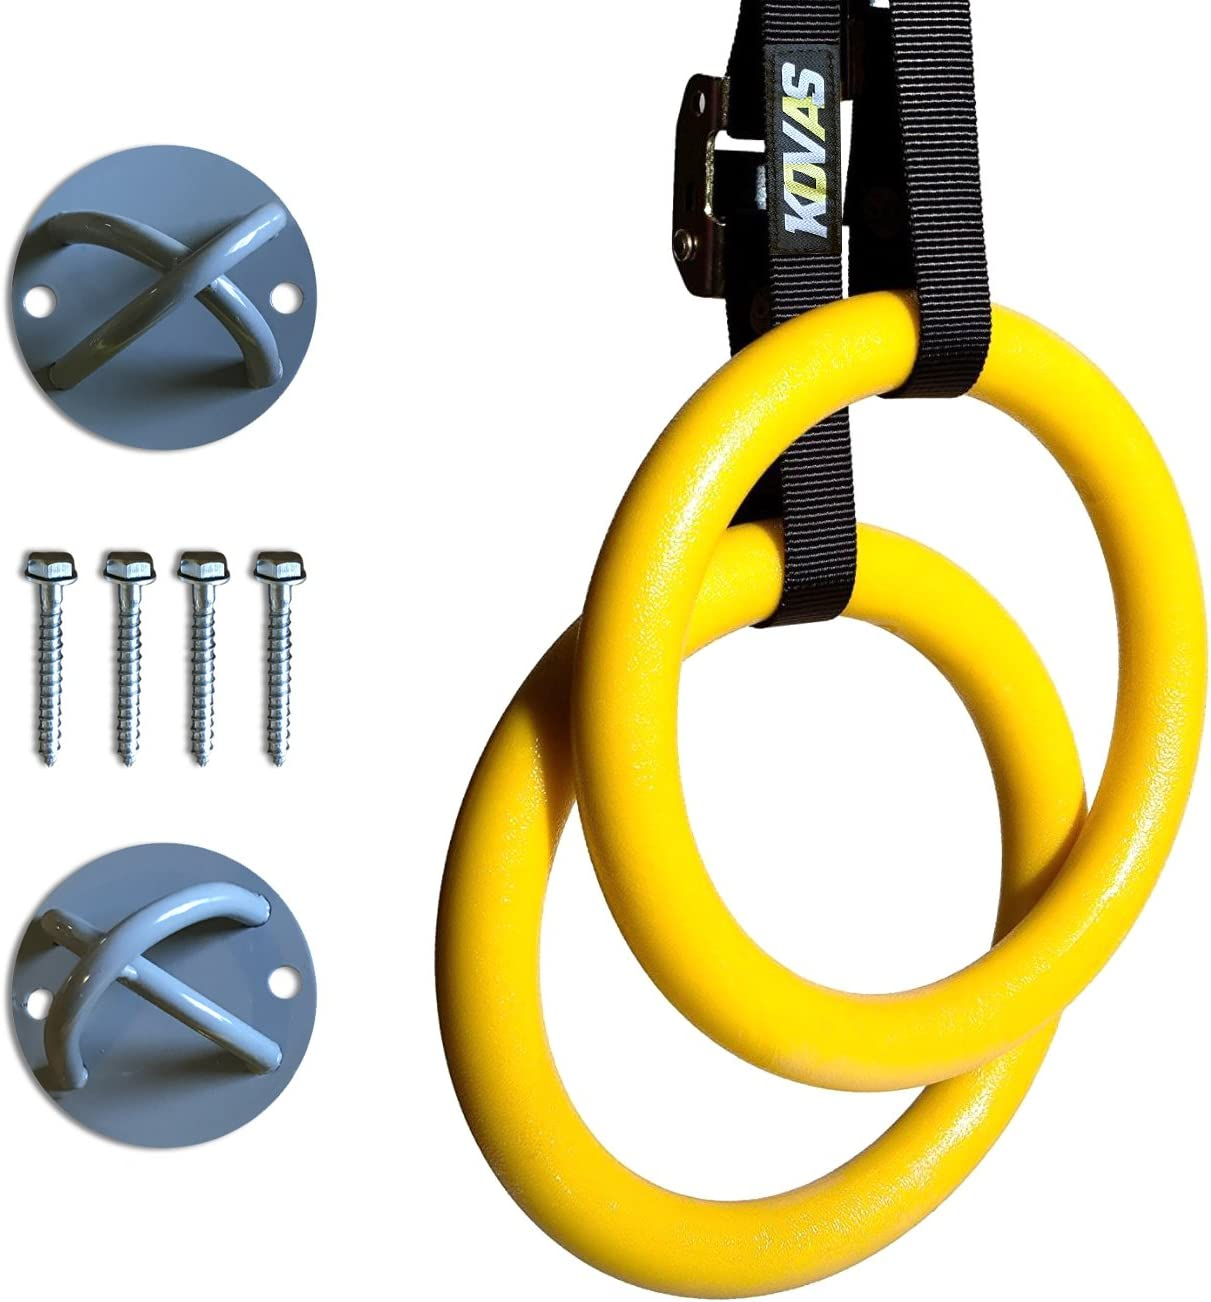 Kovas Gymnastic Rings with Adjustable Straps & Ring Mounts - Home Gym Gymnastics Equipment - Improve Fitness Strength & Balance with Body Weight Training Exercises